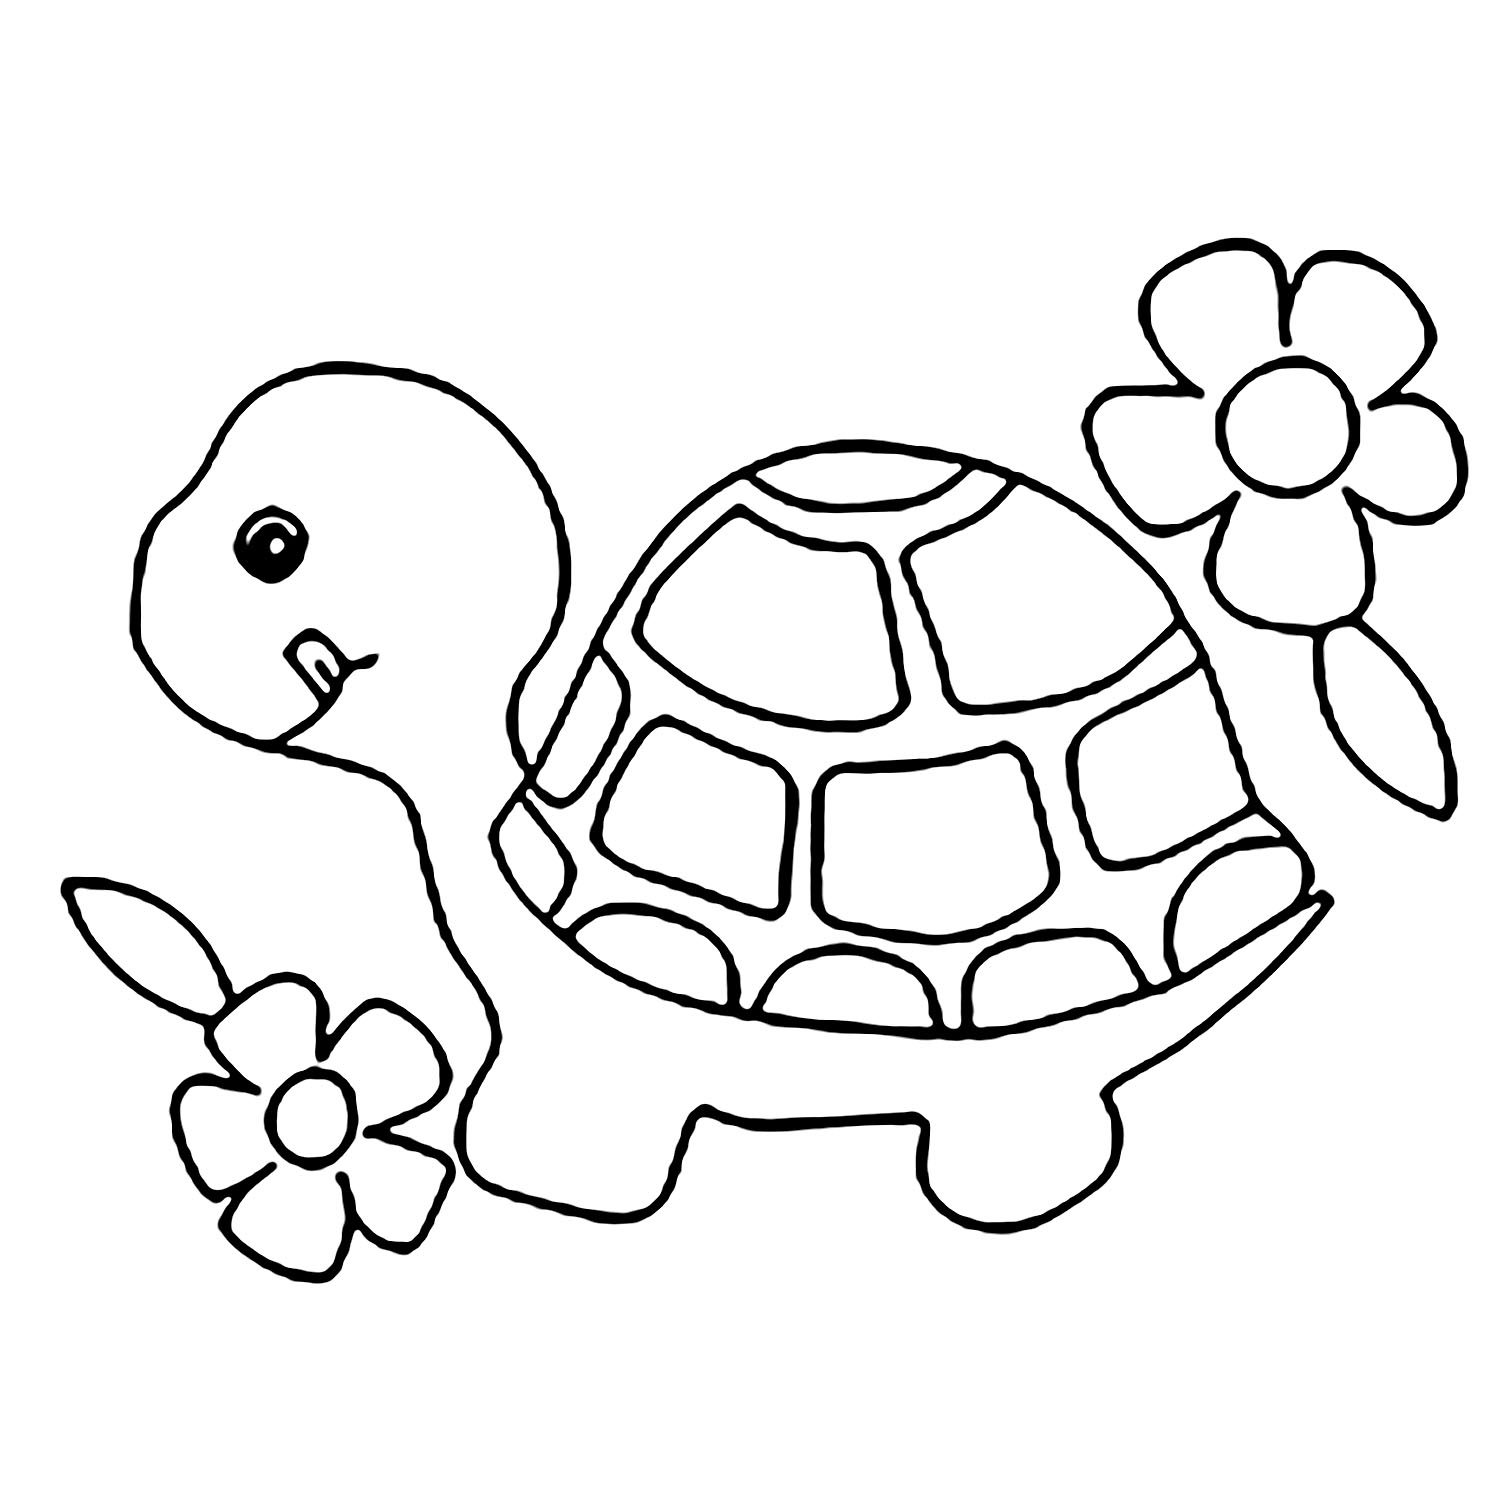 coloring pages of turtle free printable turtle coloring pages for kids coloring pages turtle of